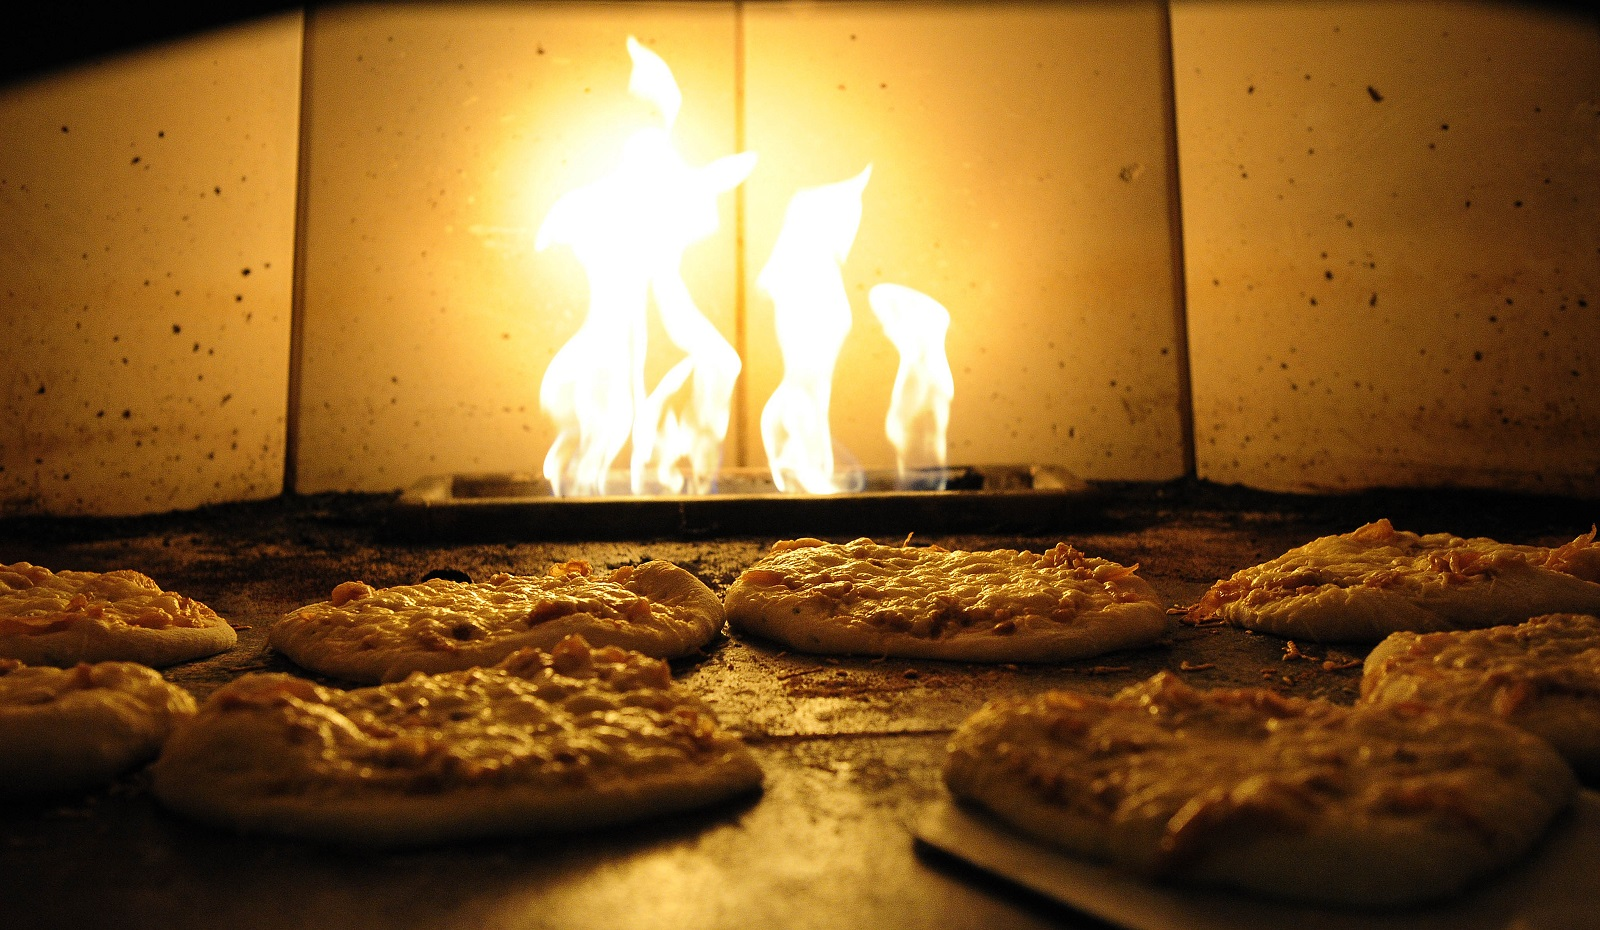 Pizzas cook in the scorching hot oven. (Buffalo News file photo)